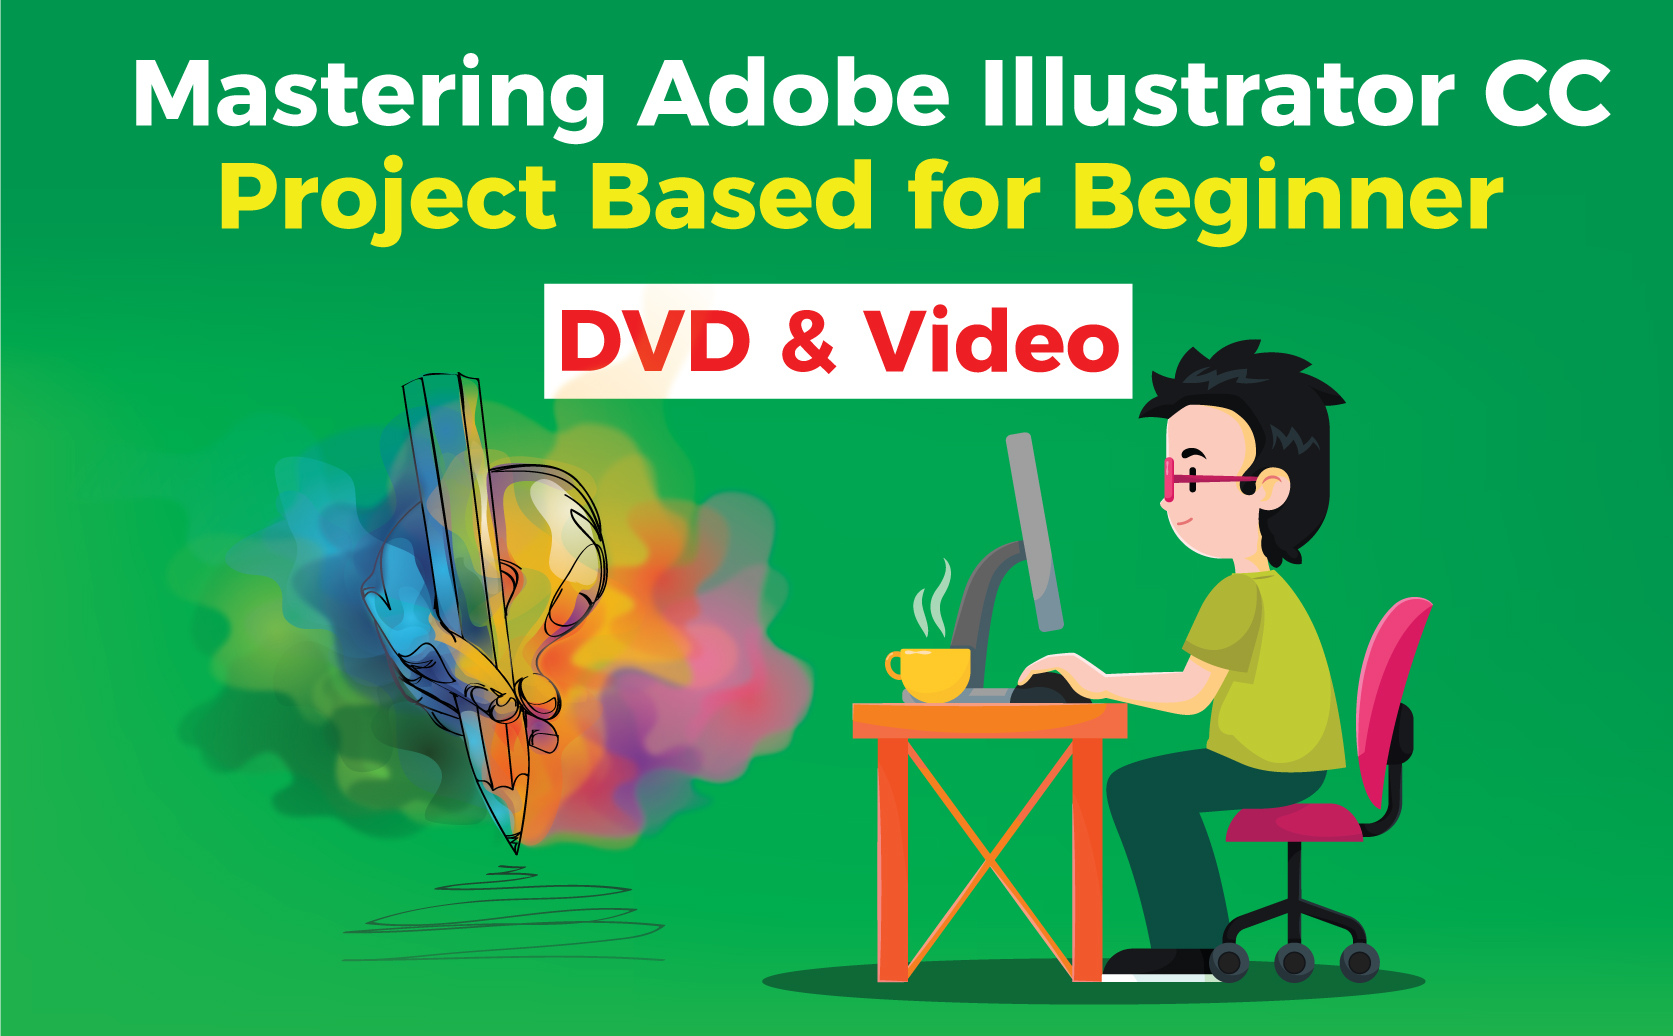 Mastering-Adobe-Illustrator-CC-Project-Based-for-Beginner